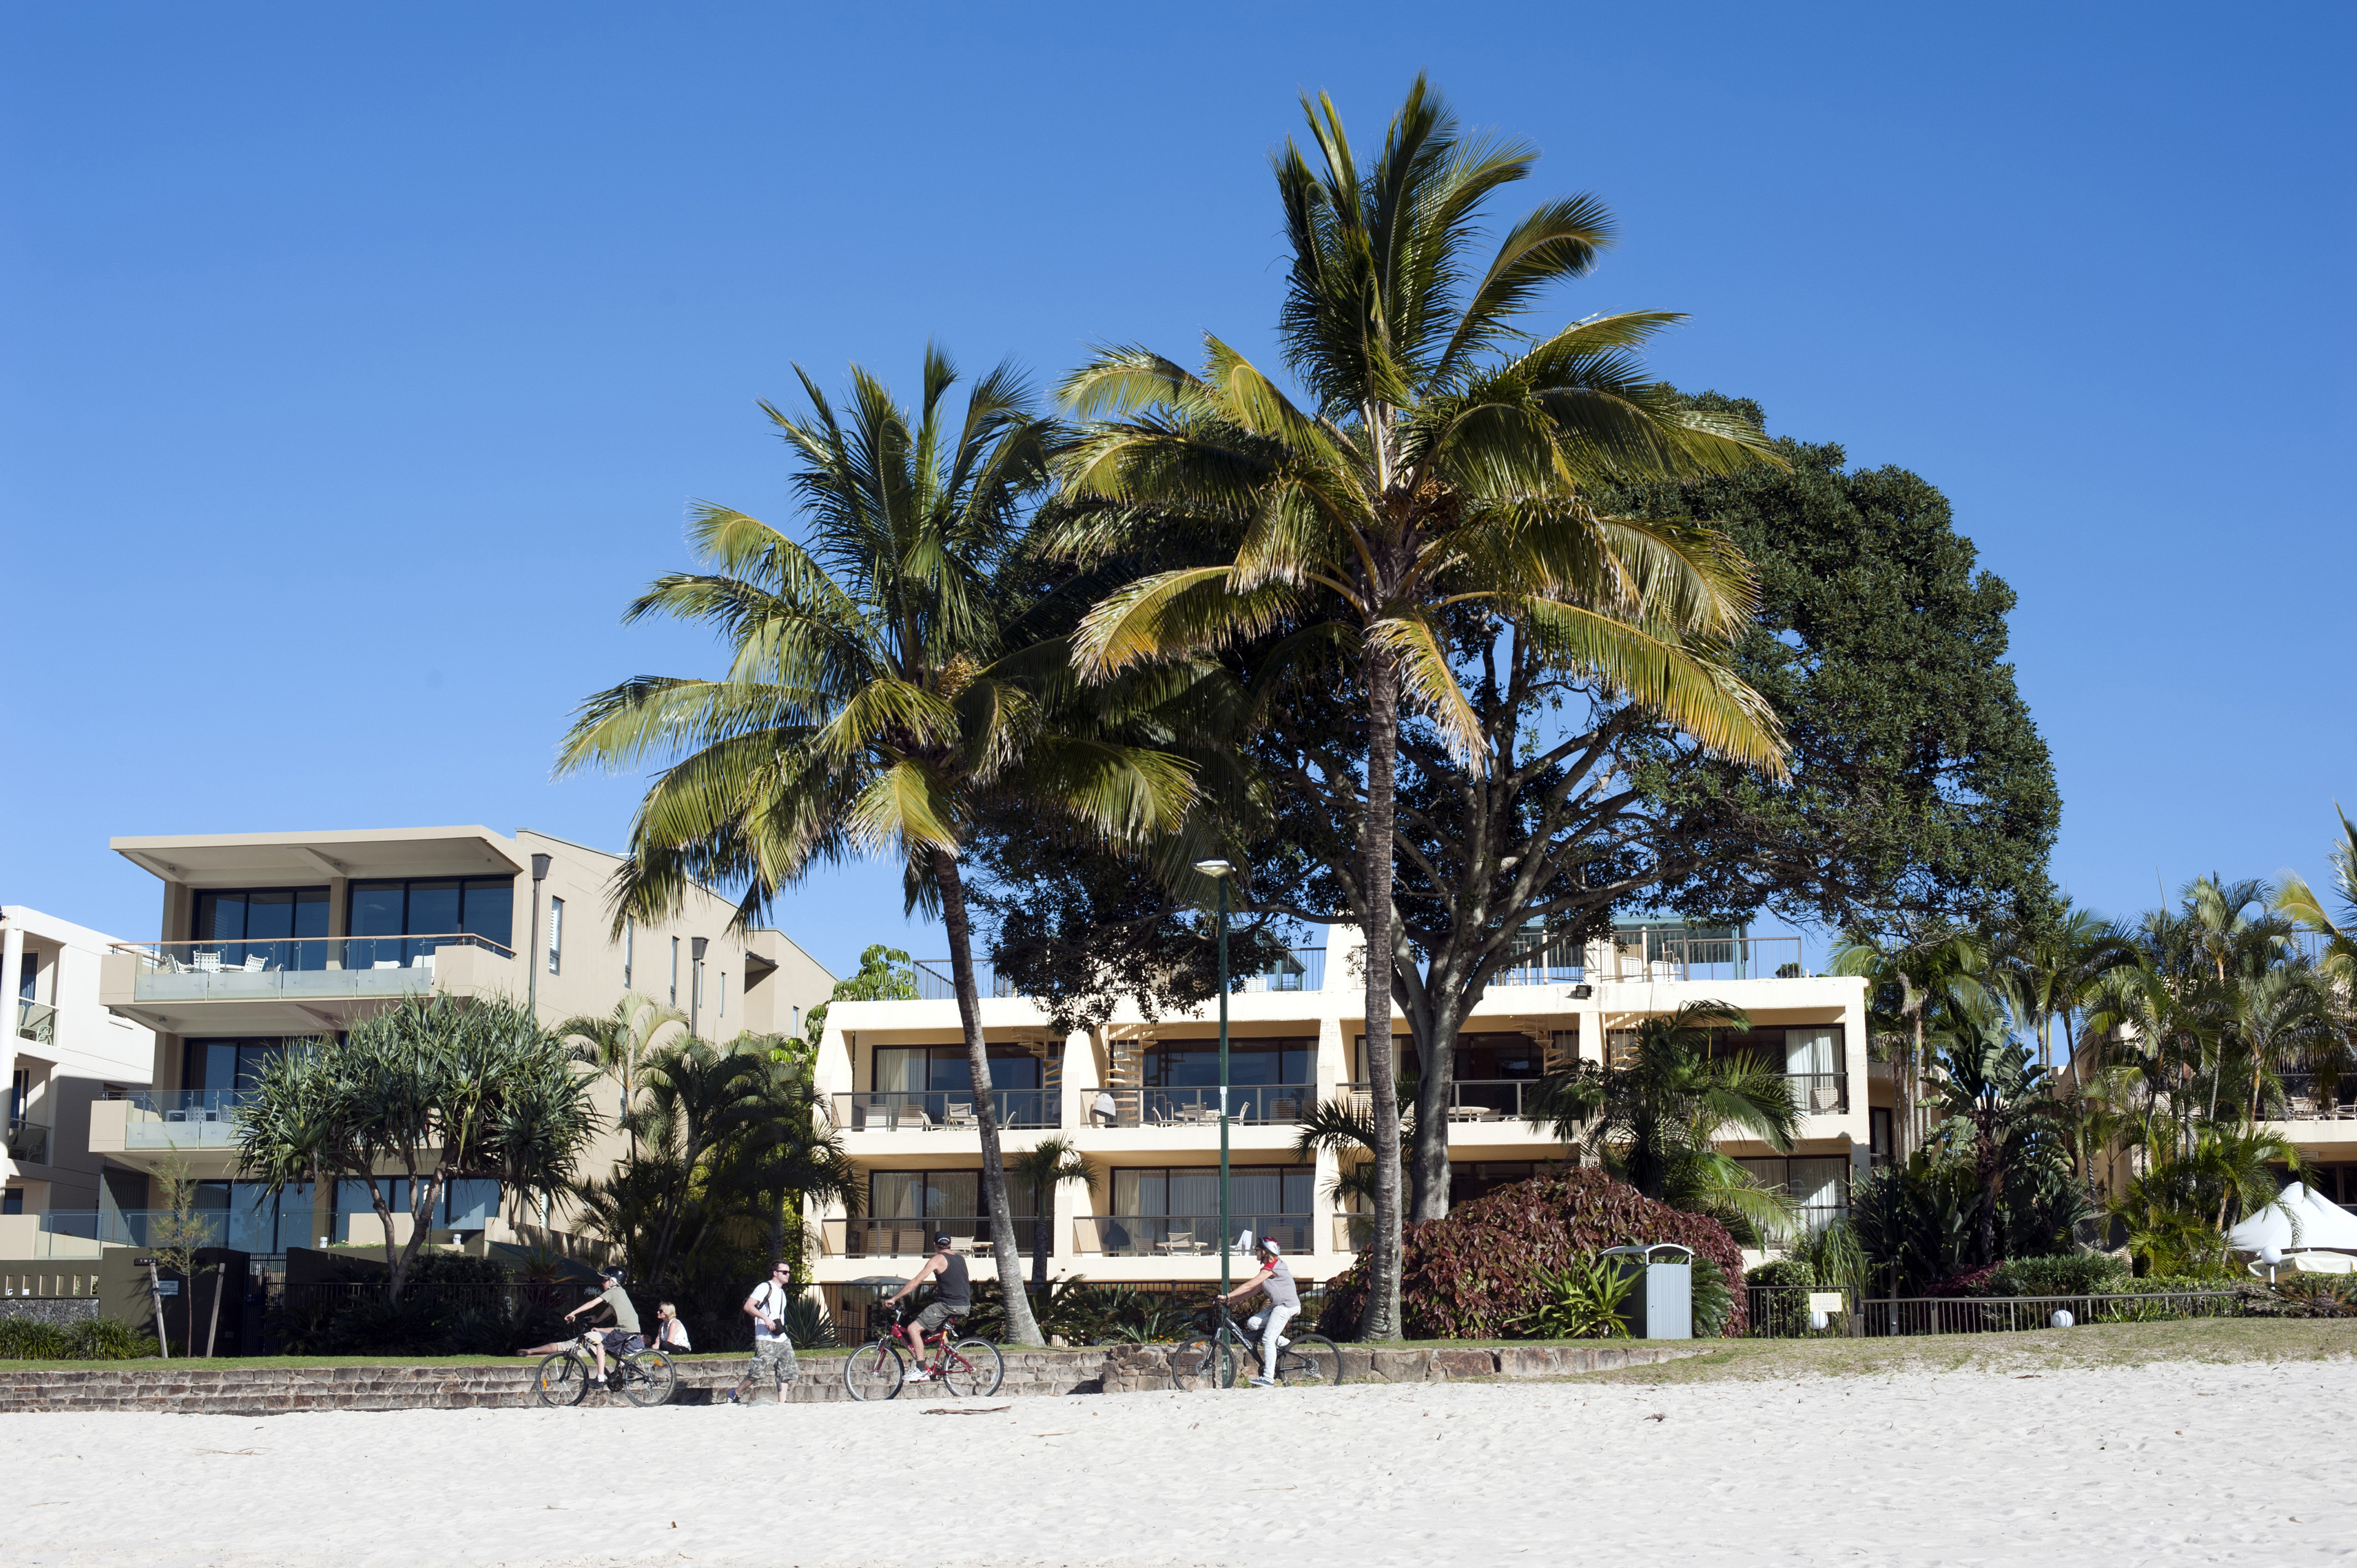 Group of People Riding Bicycles Past Low-Rise Beachfront Resort with Palm Trees